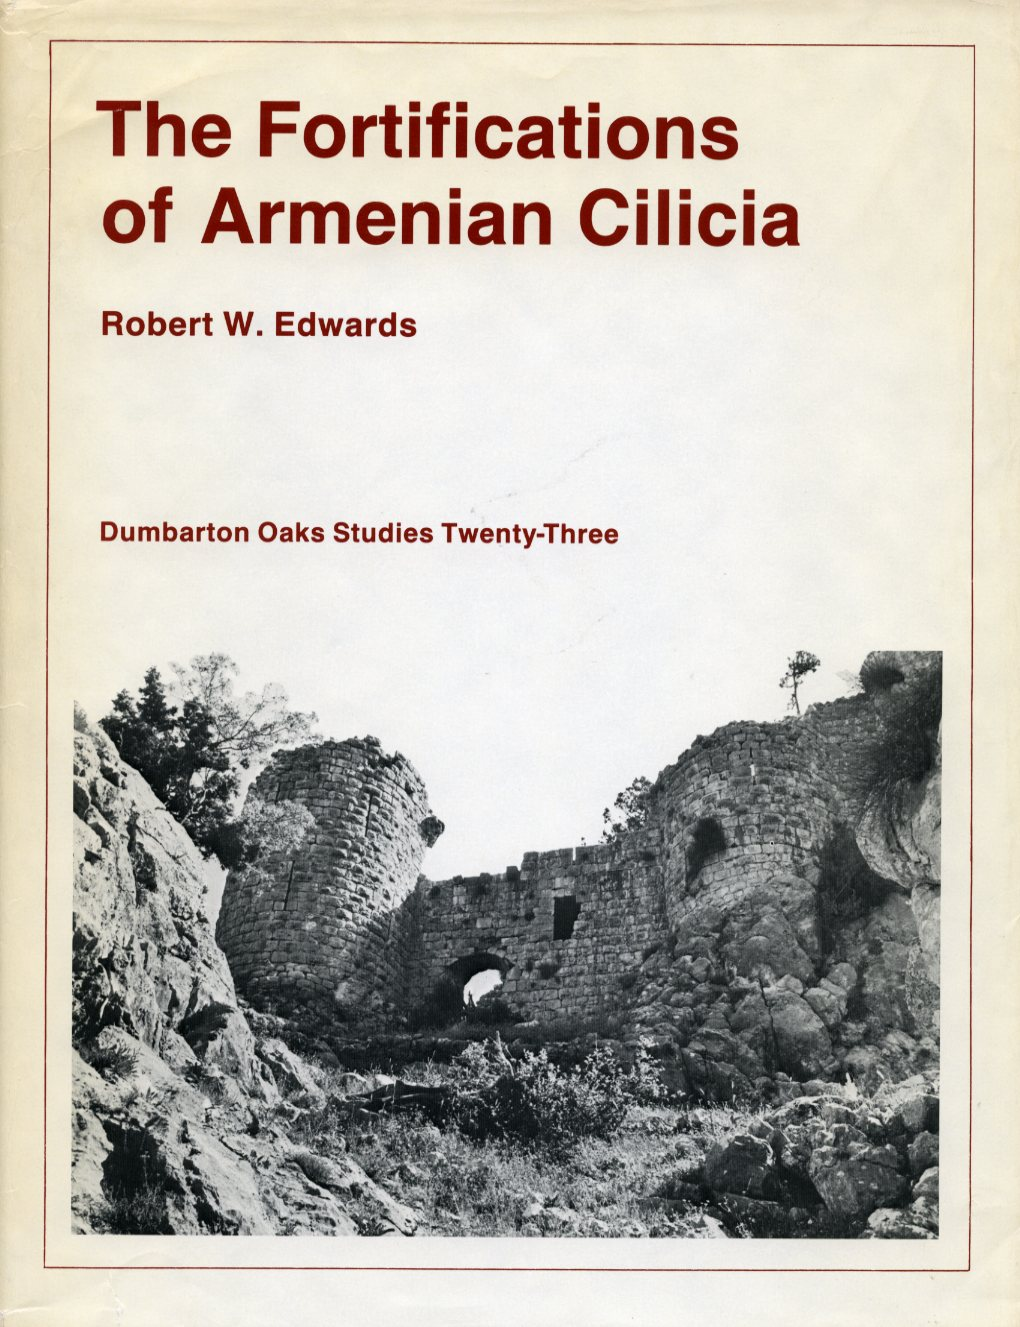 The Fortifications of Armenian Cilicia